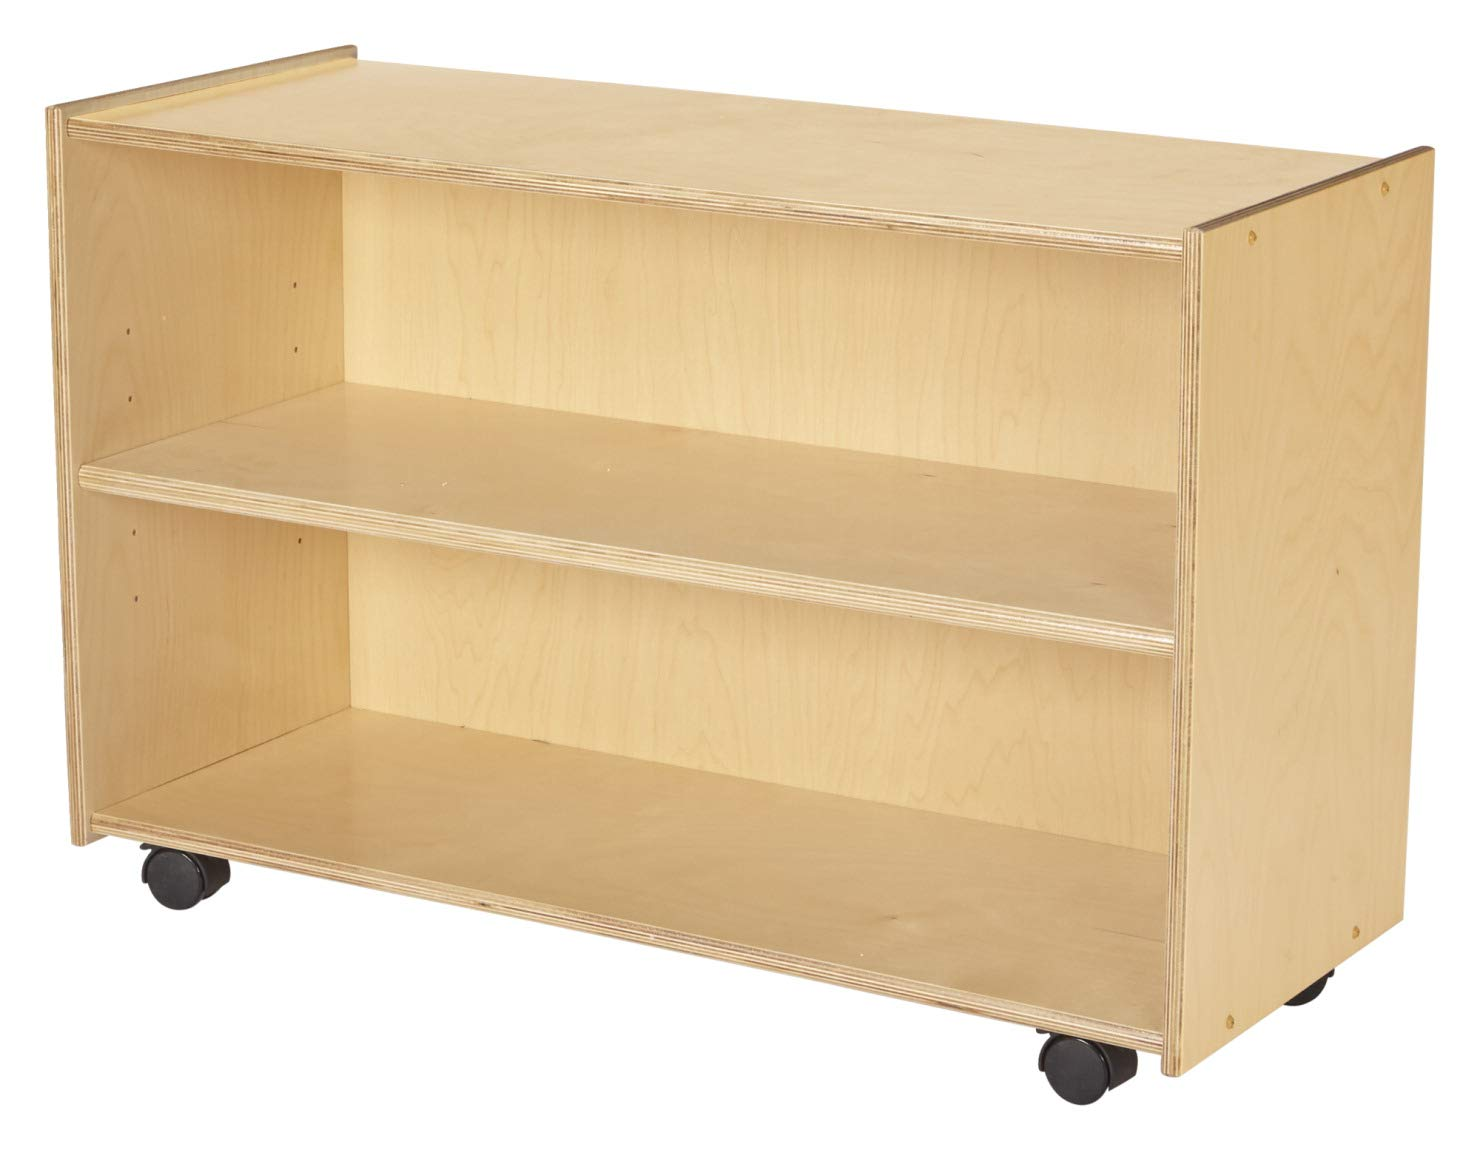 Childcraft 1558444 Shelving with Locking Casters, 35-3/4'' x 14-1/4'' x 24'', Brown by Childcraft